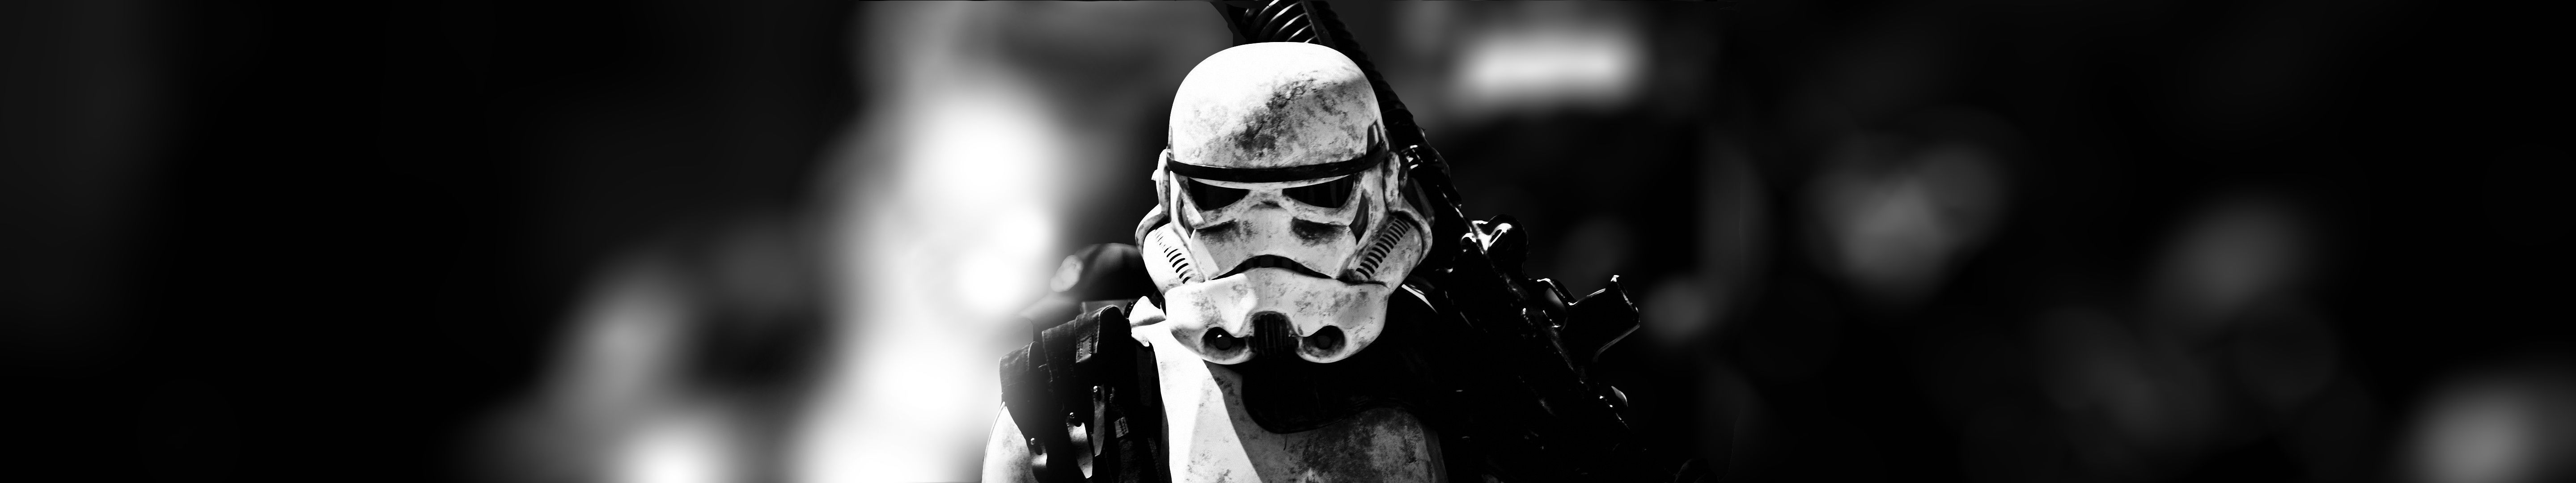 Star Wars 5760x1080 Wallpapers Top Free Star Wars 5760x1080 Backgrounds Wallpaperaccess